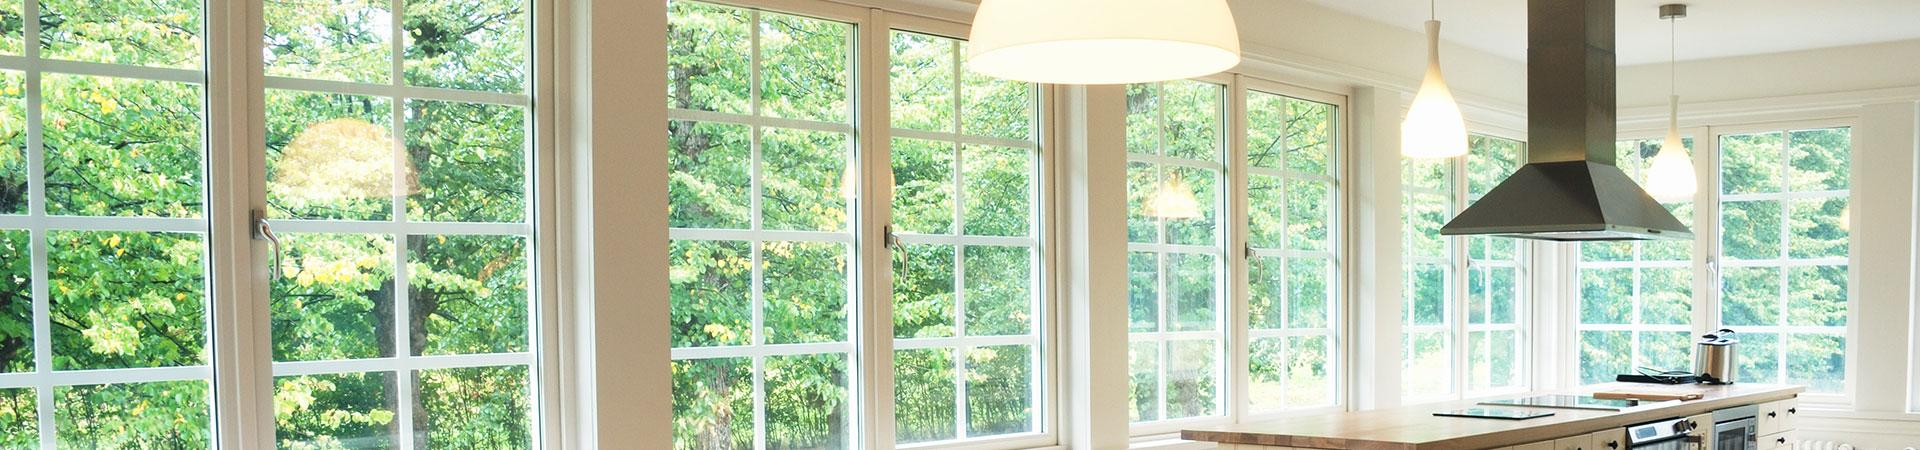 Double Hung Replacement Windows In Raleigh Fuquay Varnia